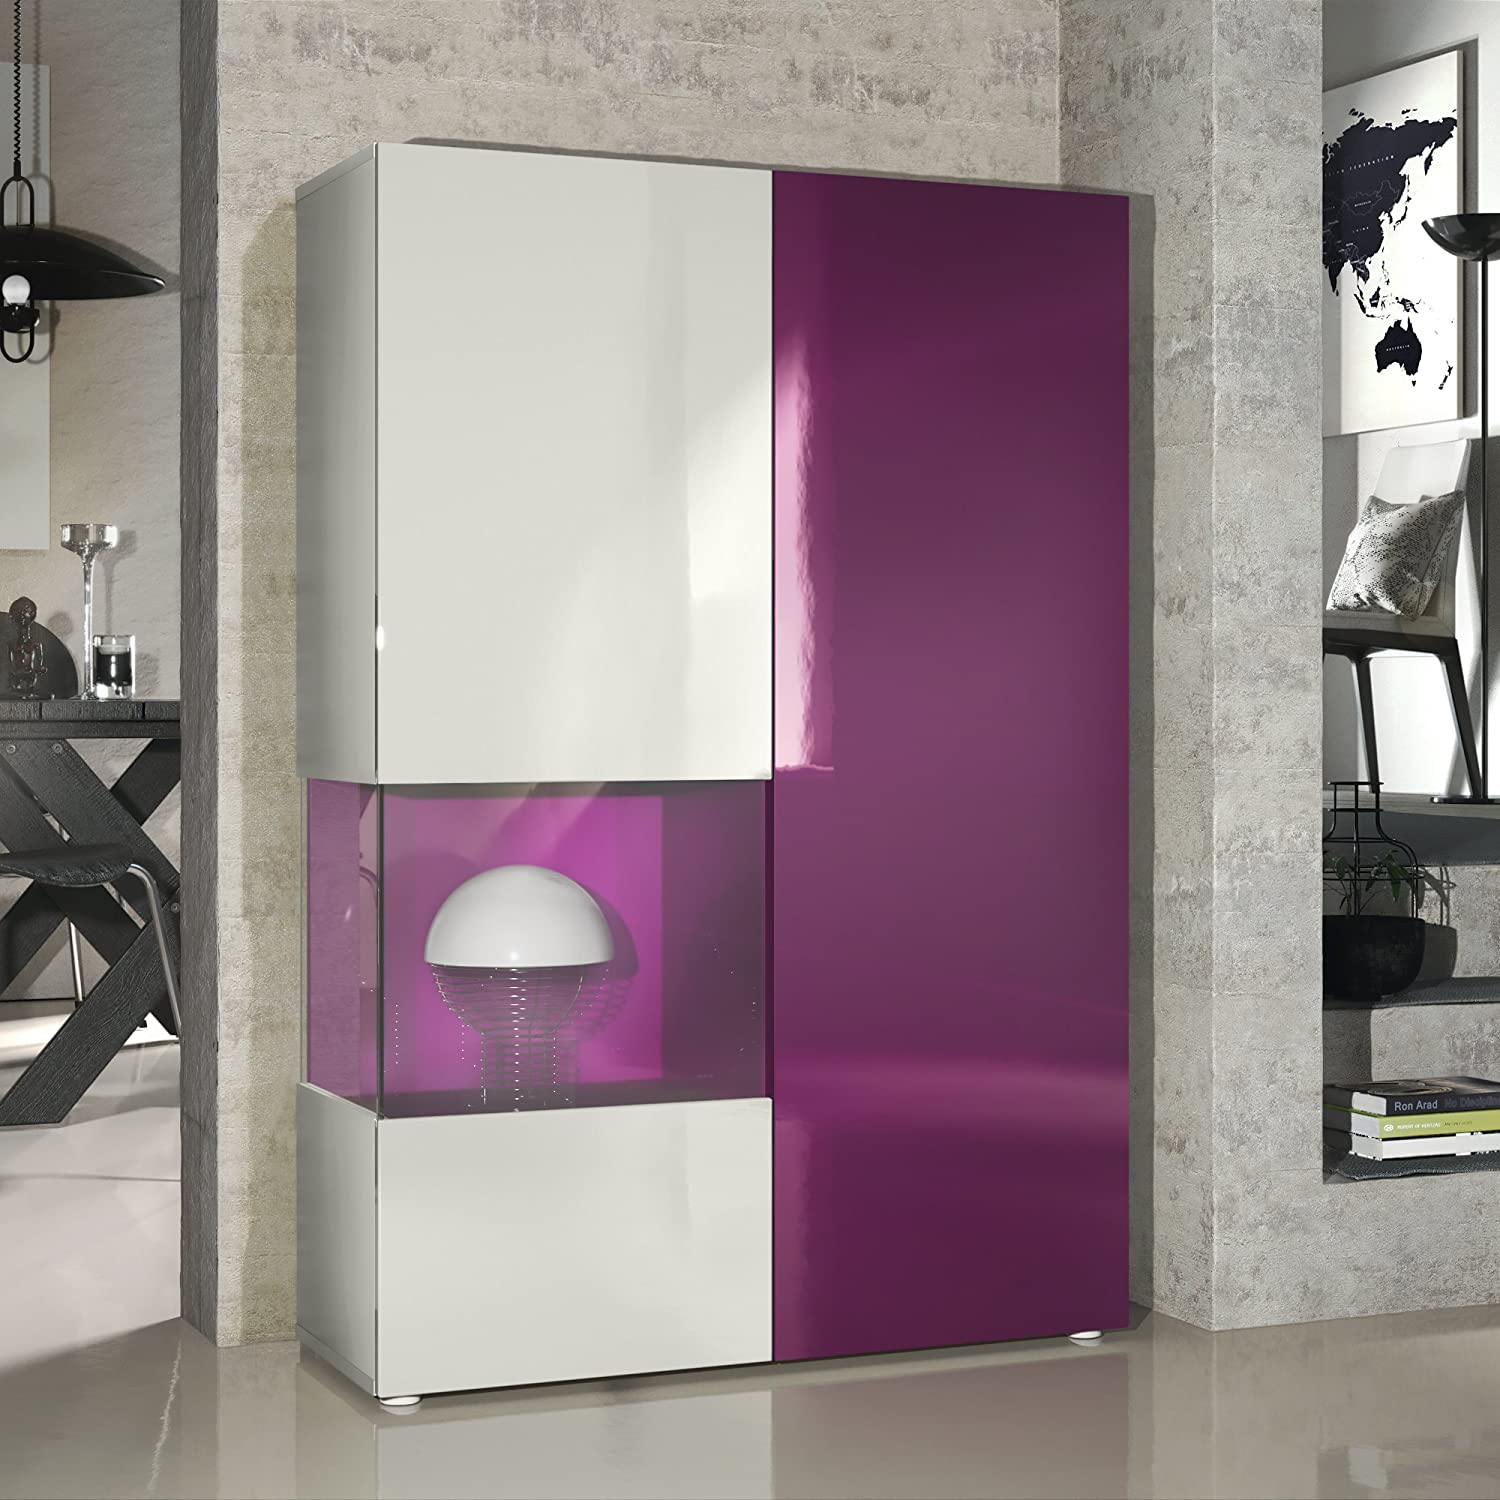 Vladon Tall Display Cabinet Cupboard Morena Carcass in White matt//Right door and Insert in Oak Nordic with LED lighting